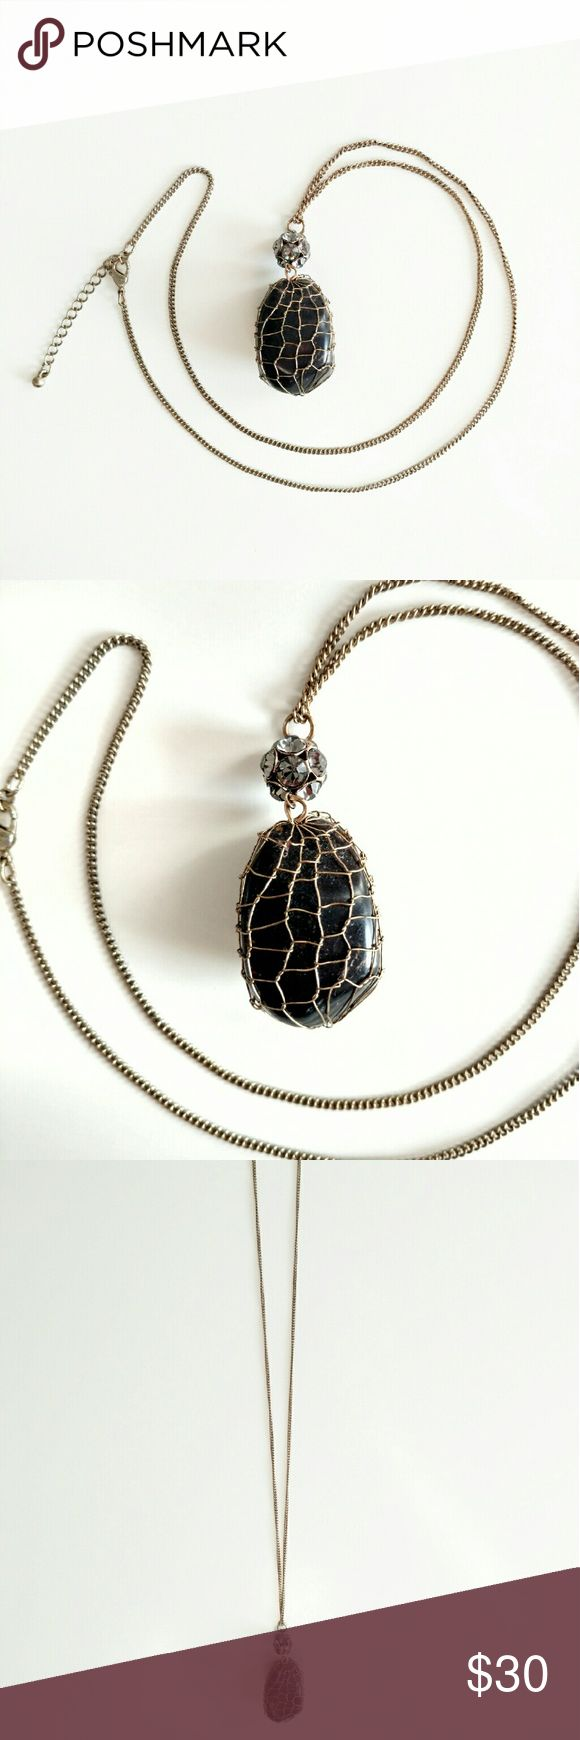 Caged Stone Necklace Price firm. Jewelry Necklaces